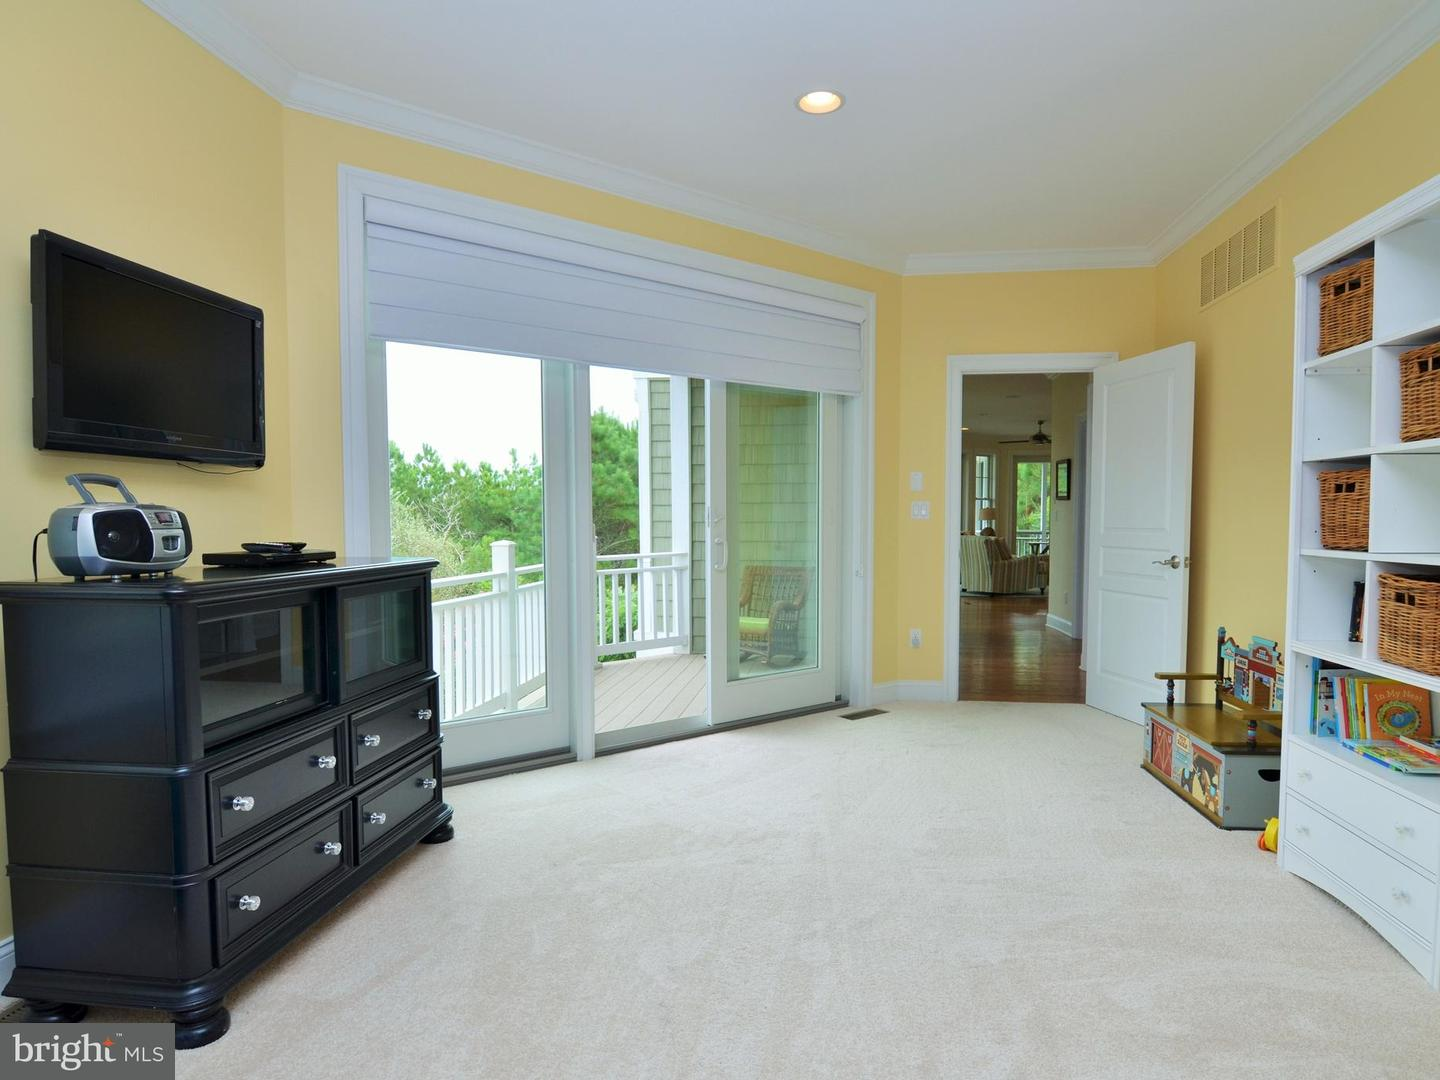 1002293530-300500807529-2018-09-25-15-08-25 31 Hall Ave | Rehoboth Beach, DE Real Estate For Sale | MLS# 1002293530  - 1st Choice Properties